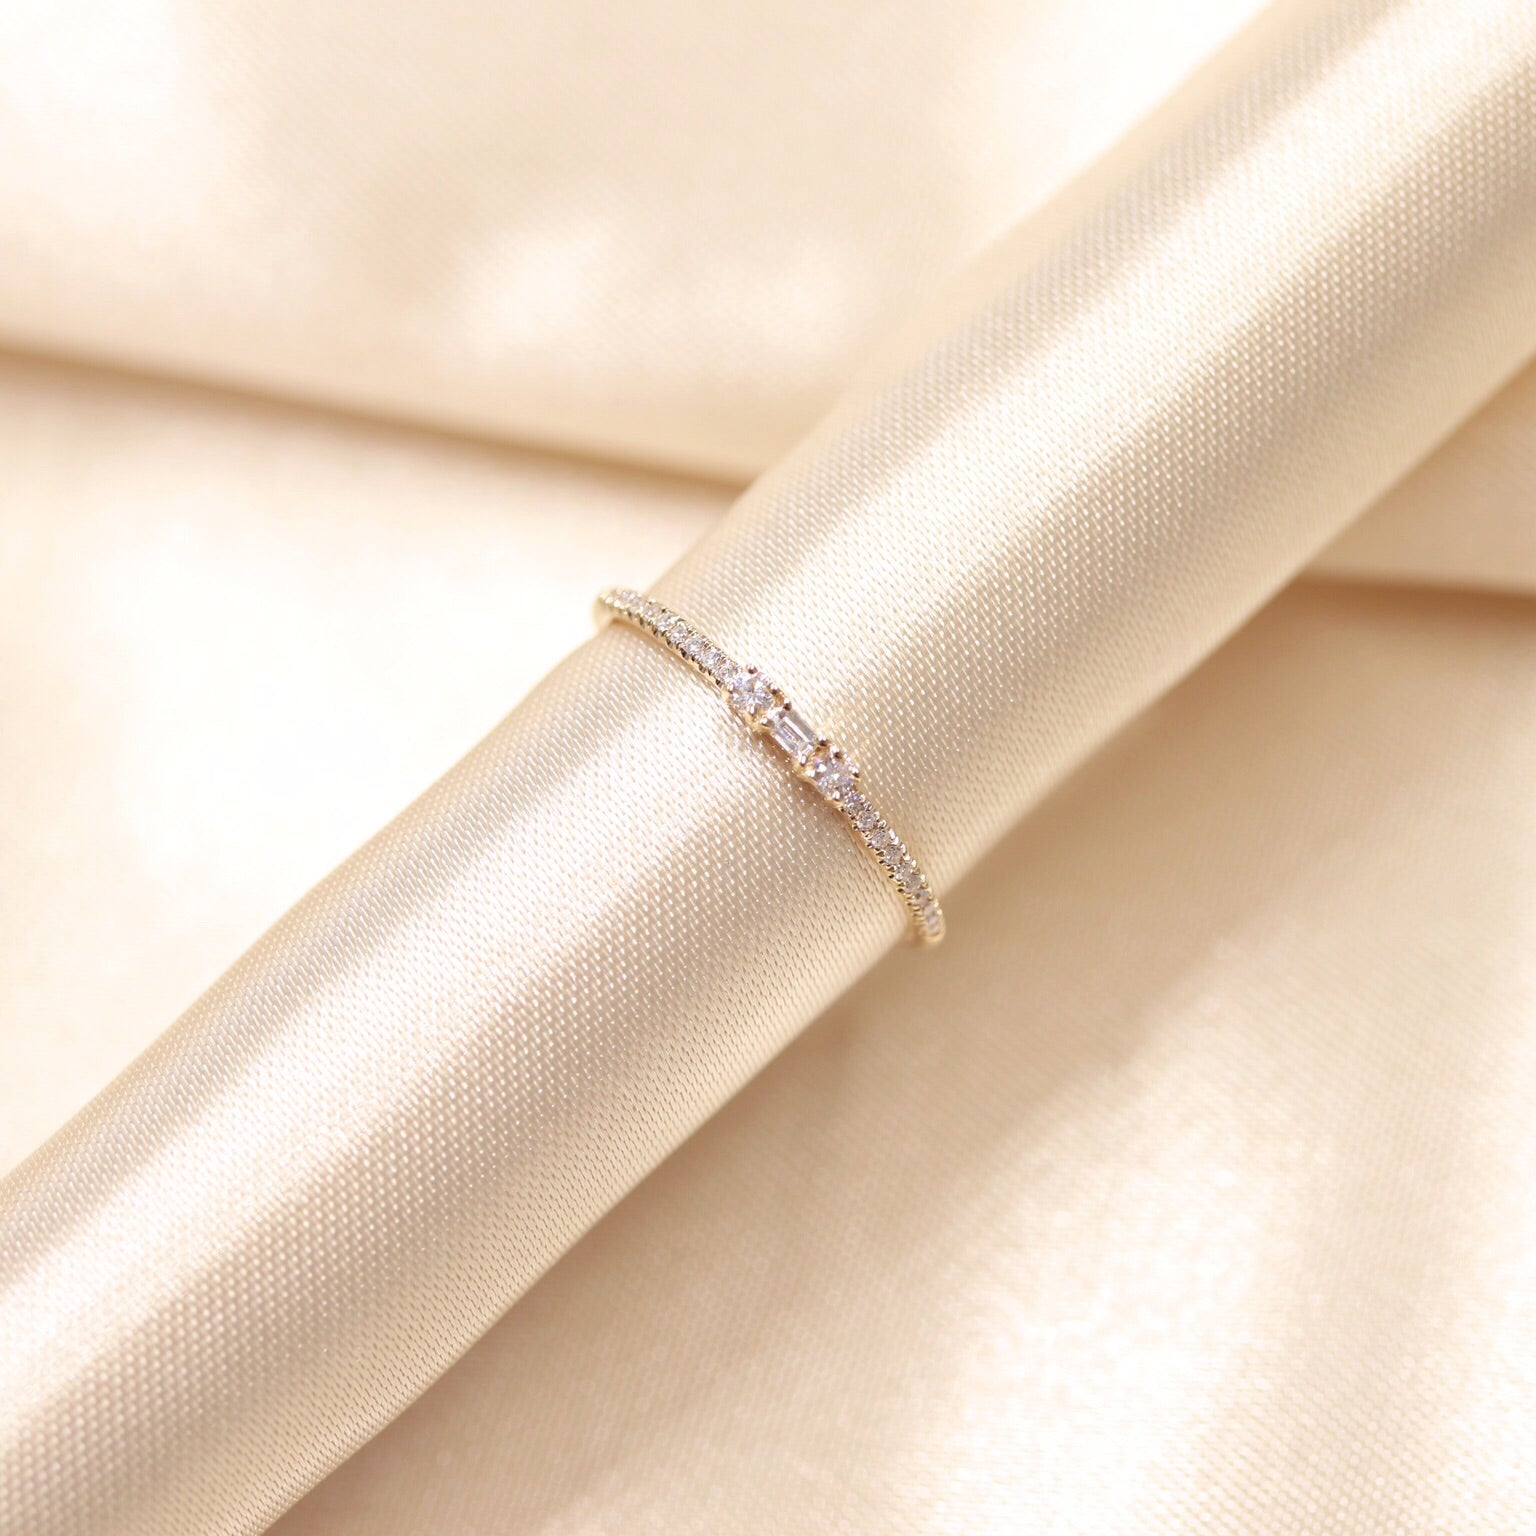 14K Gold Single Baguette & Round Diamond Stacking Ring - Ice Motif